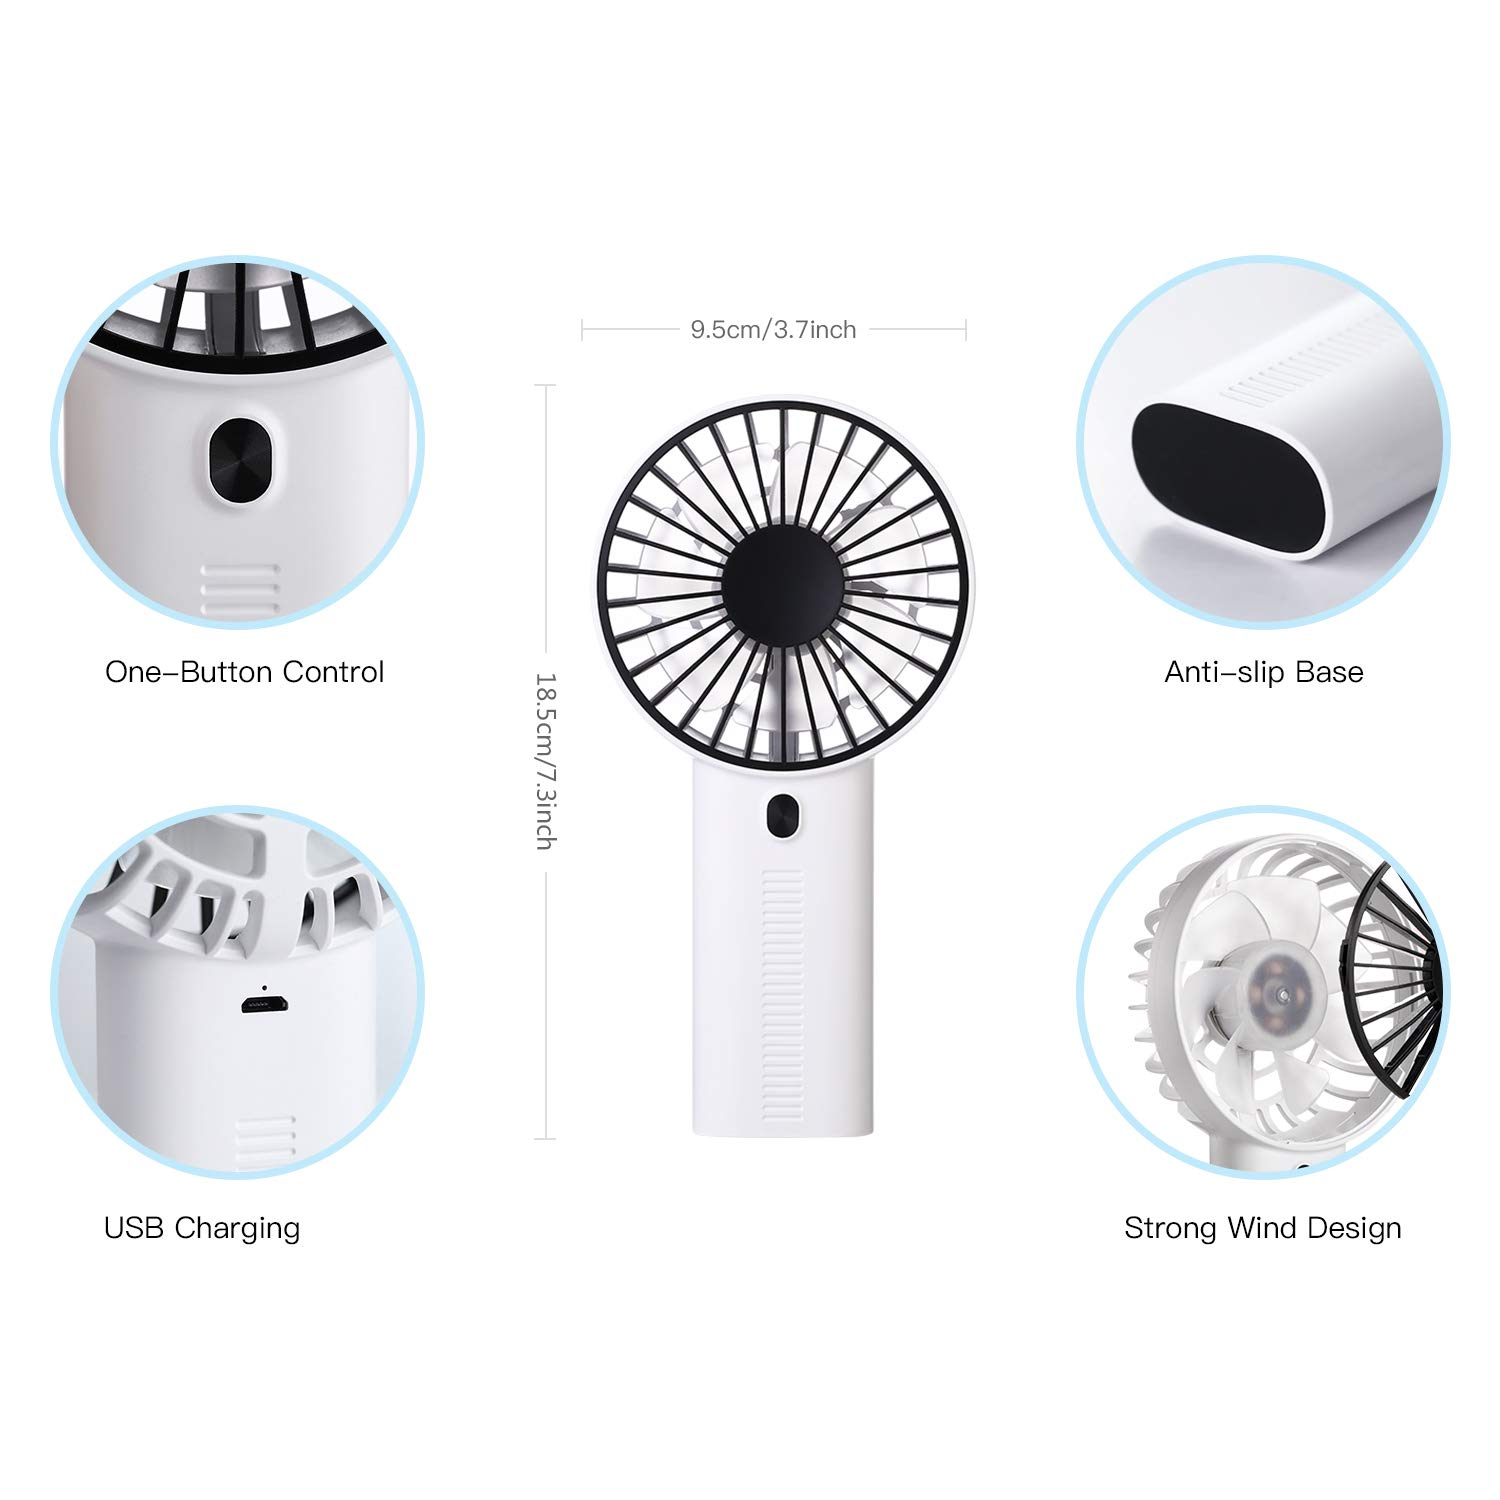 Blue AlfaView Mini Personal Fan 3 Speed Portable USB Charging Air Cooloing Desktop Mobile Phone Holder Mini Fan for Outdoor Home Office Travel